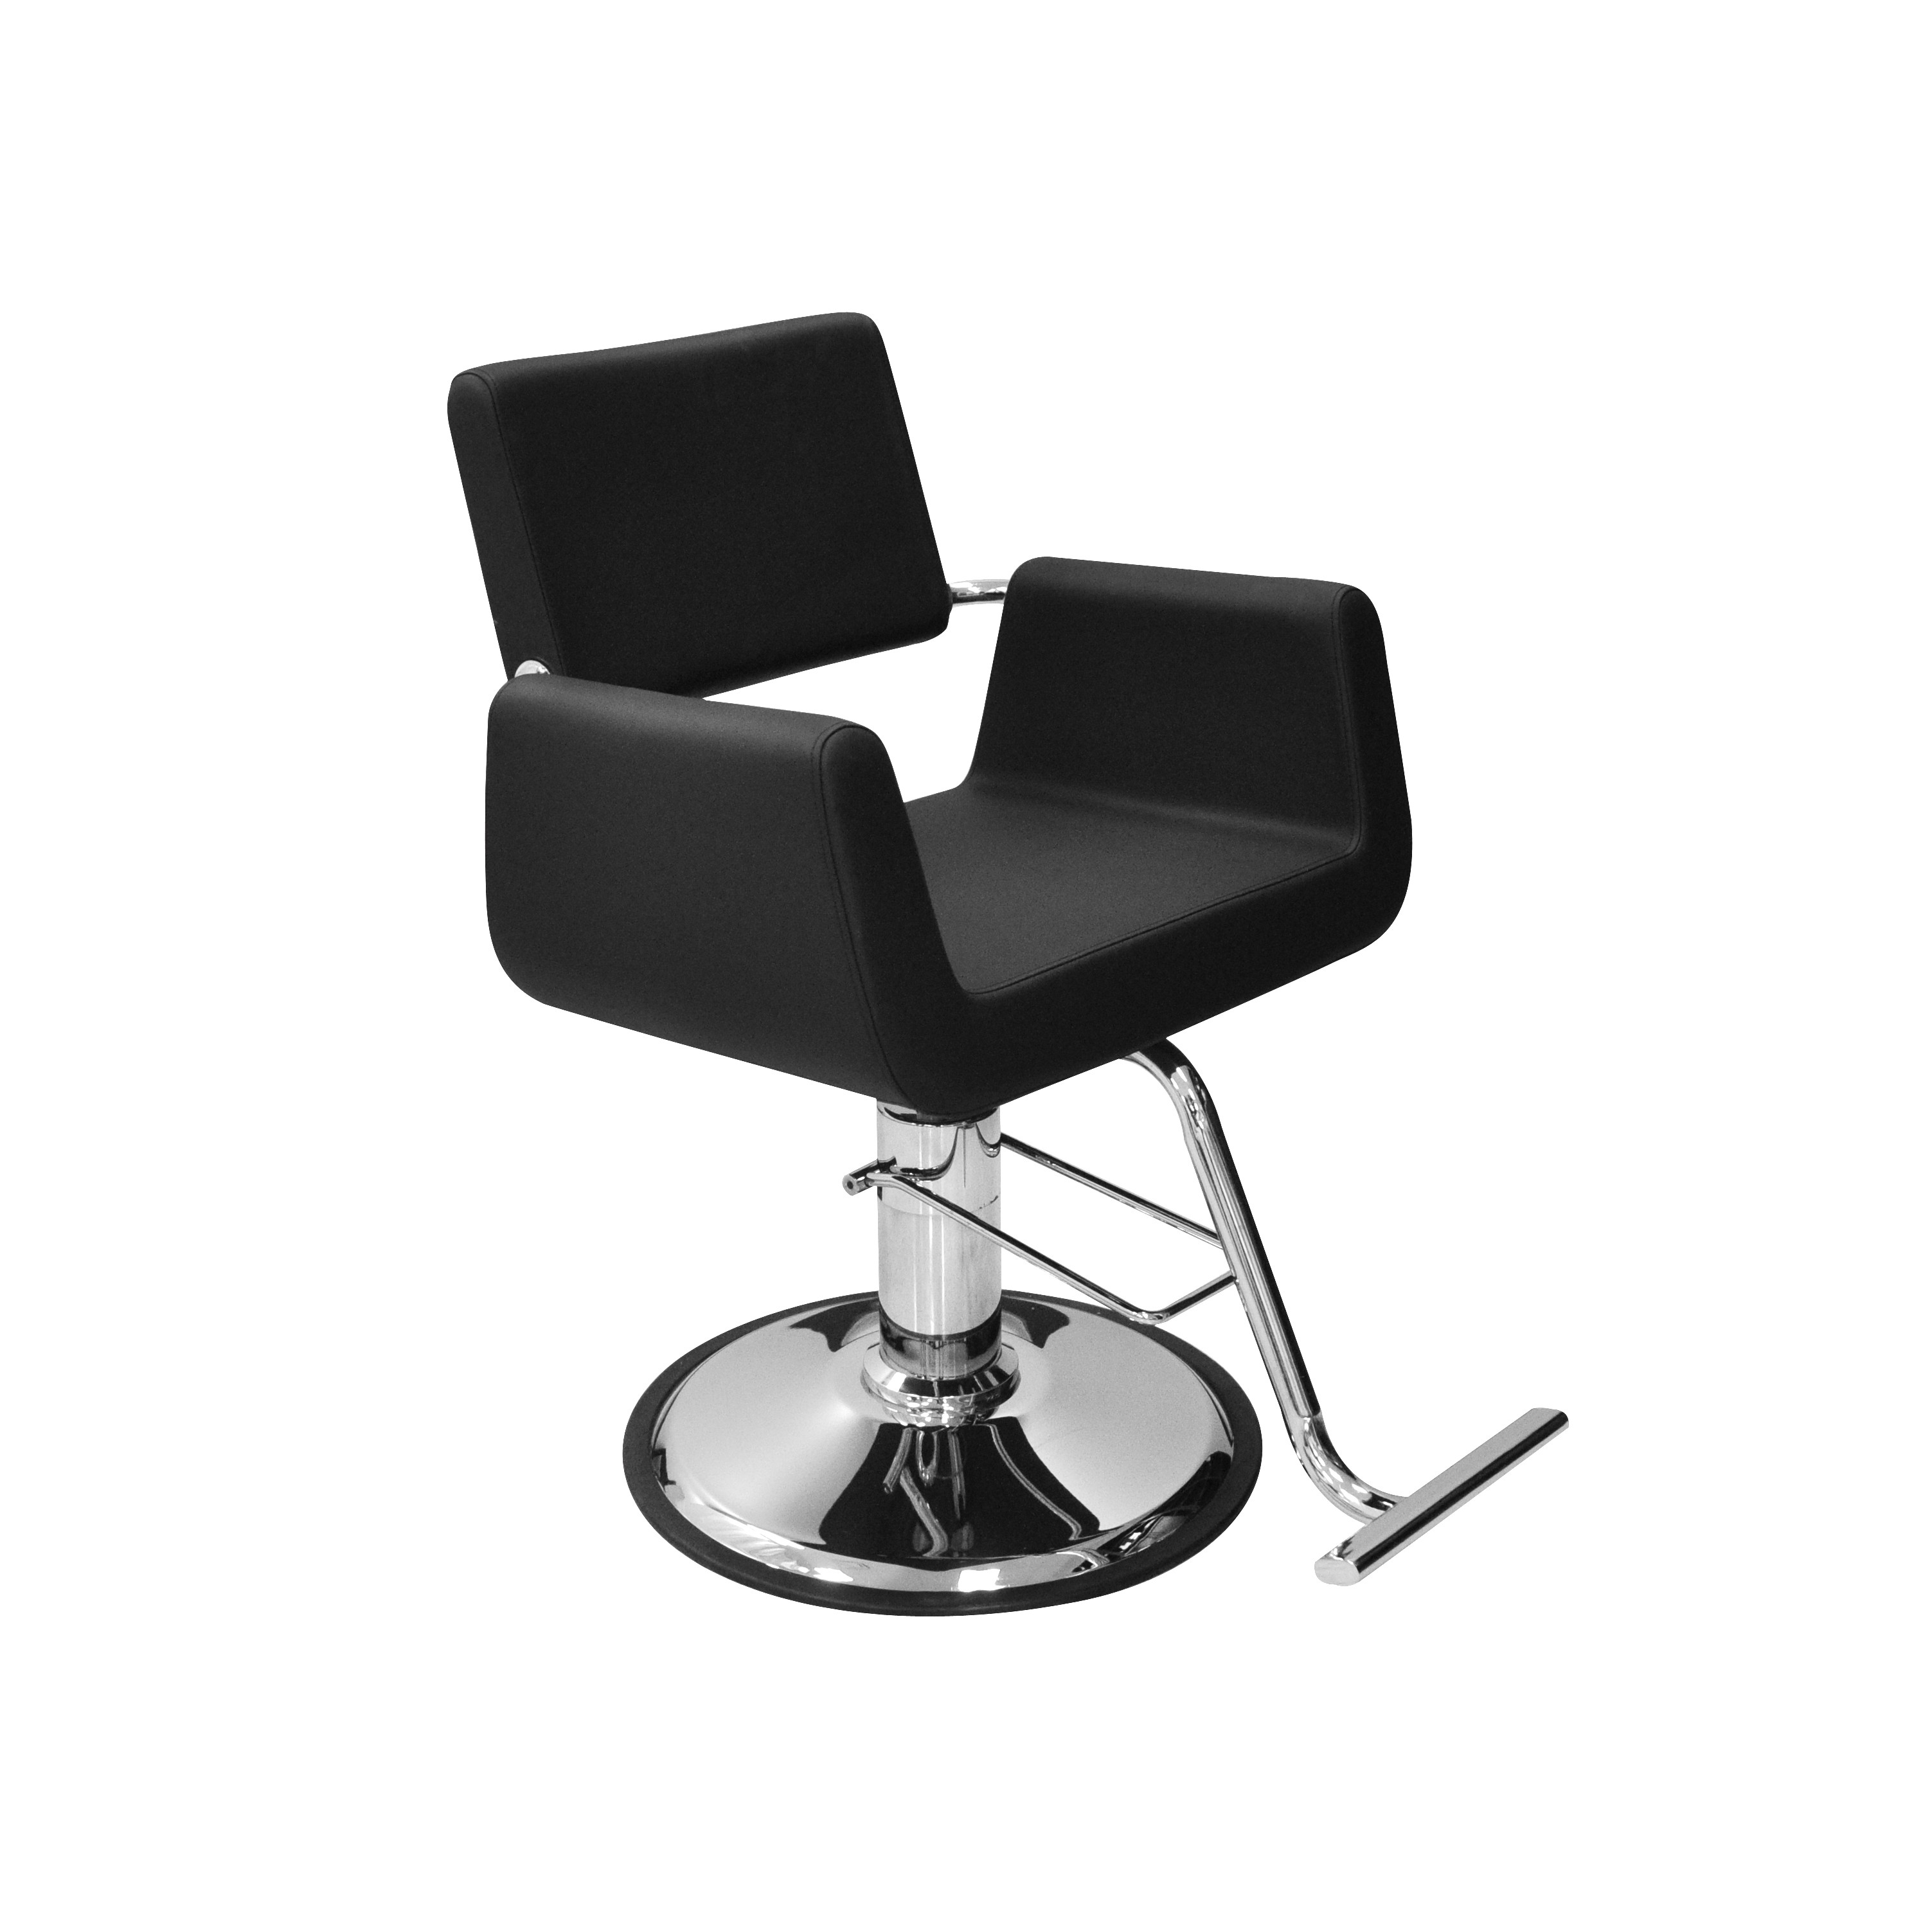 AYC TD6971-A52 ARON Styling Chair - Round Base